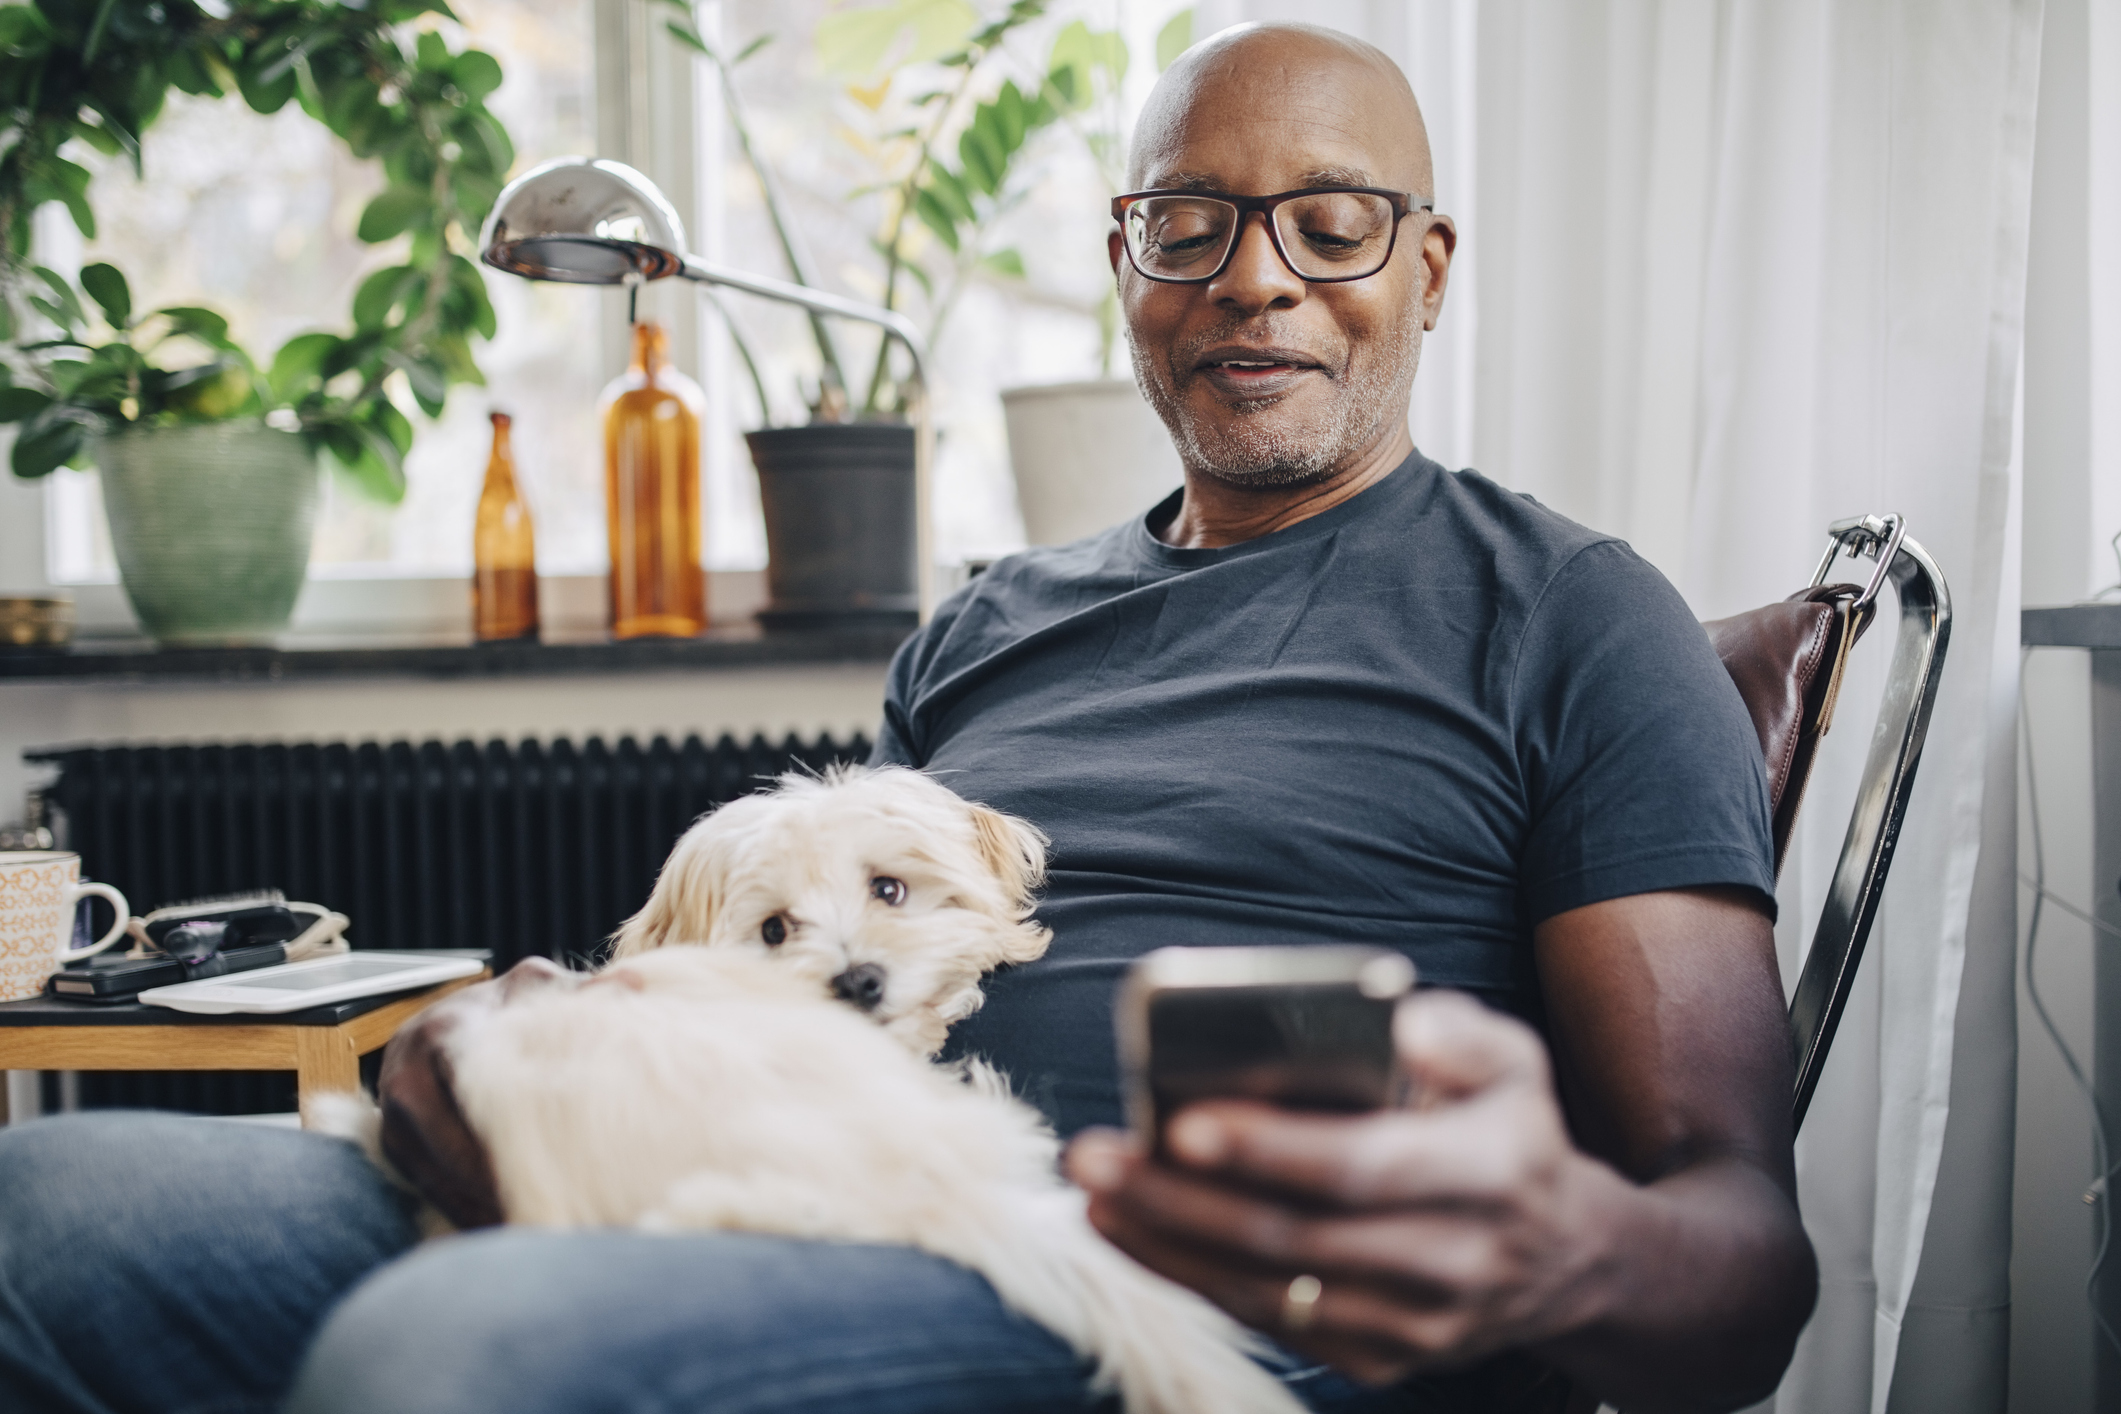 A senior adult African American male browsing his retirement savings on his smartphone while a white dog sits in his lap.